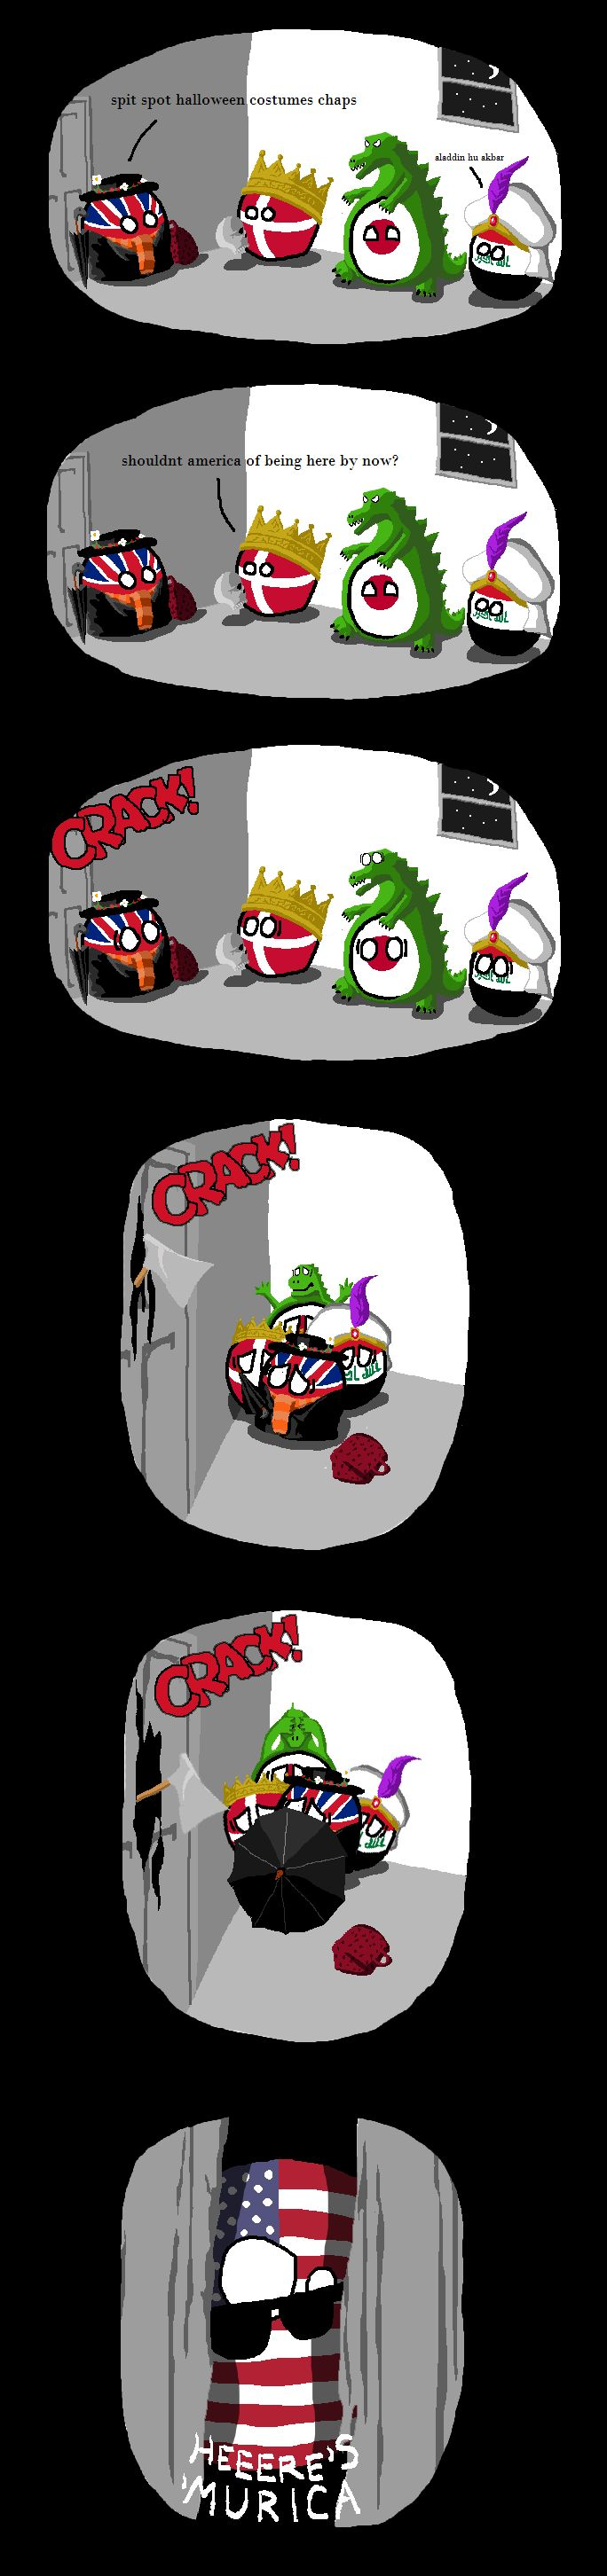 """Halloween Costumes"" The Shining ( UK, Denmark, Japan, Iraq, USA ) by arrz  #polandball #countryball"